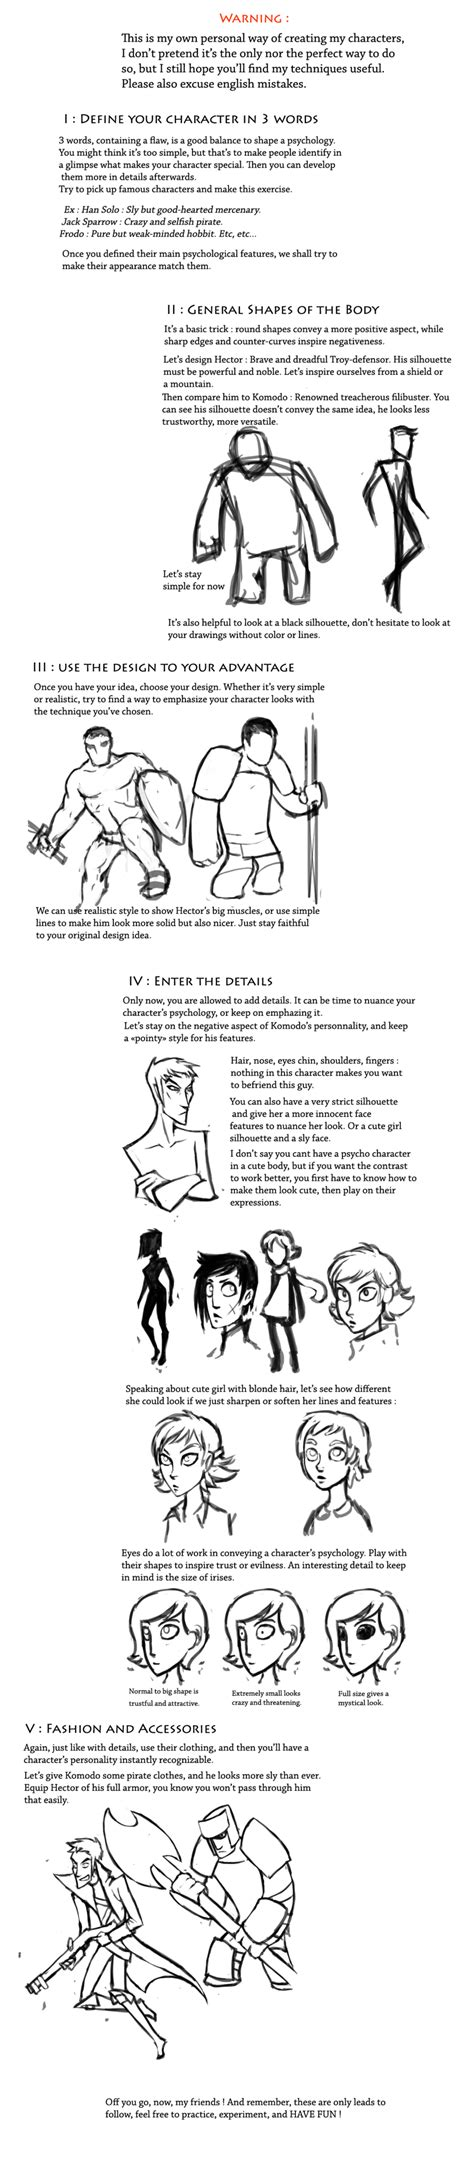 tutorial design character tutorial character design by poly m on deviantart